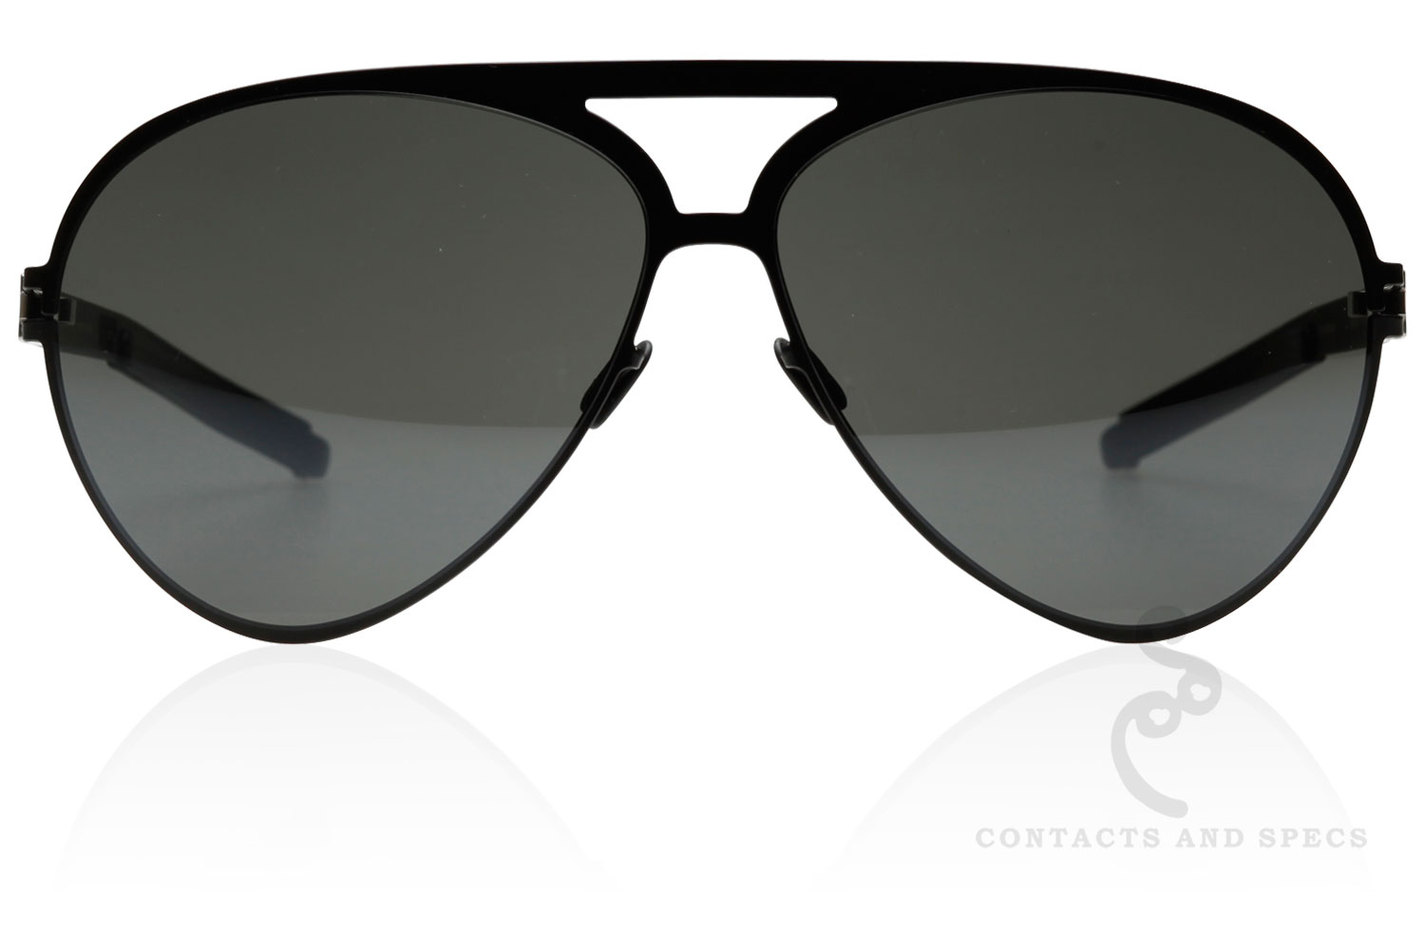 Mykita Bernard Willhelm Sunglasses Sepp Limited Edition Designer.